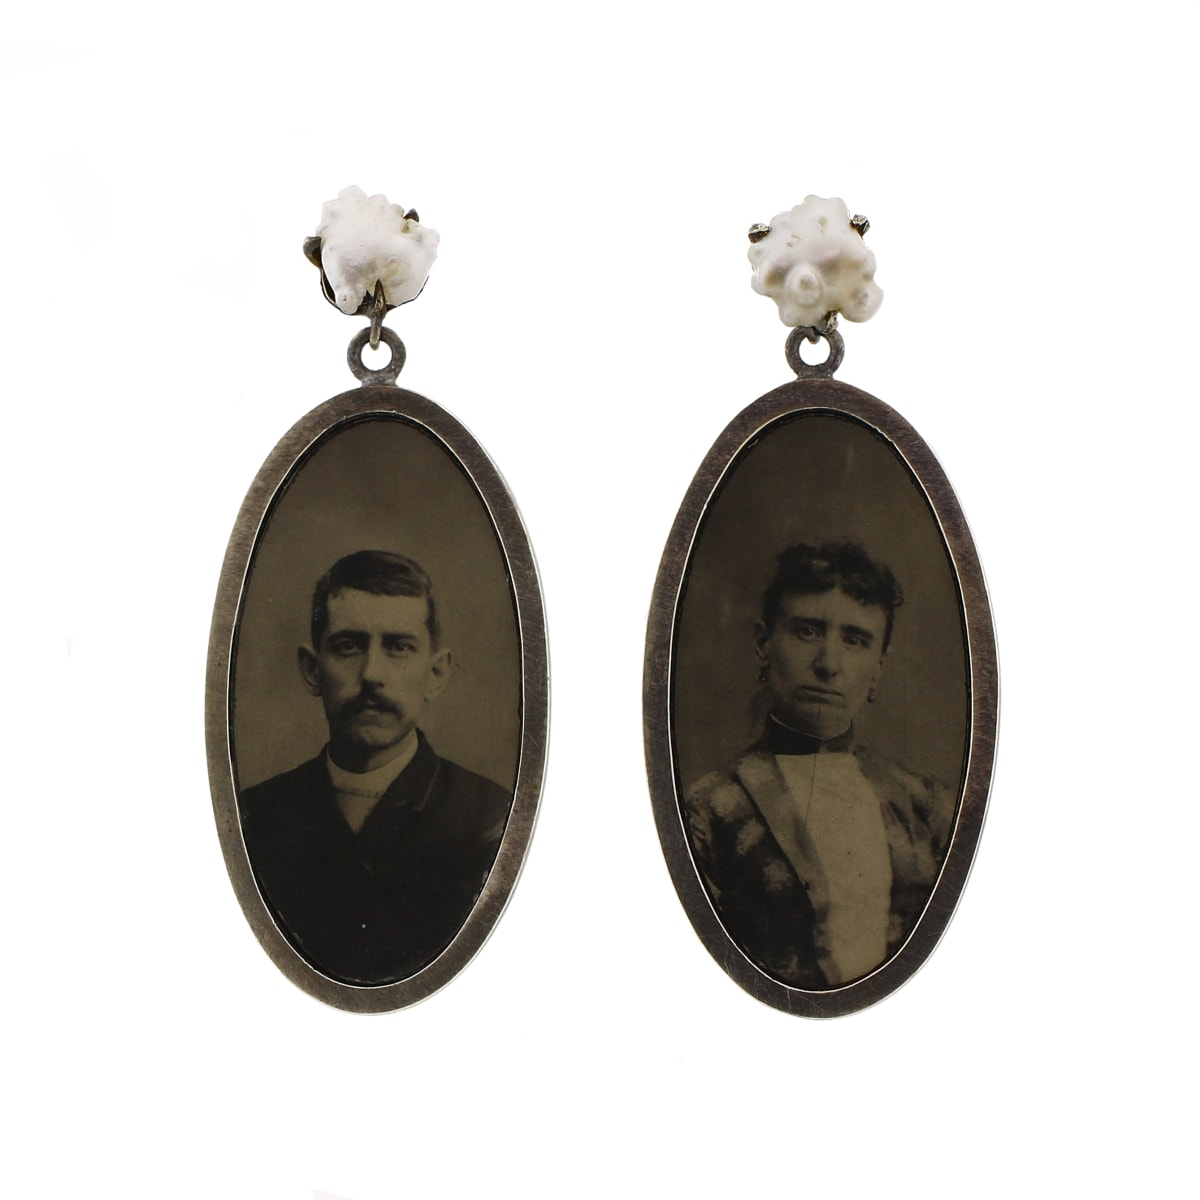 Megan McGaffigan, Re-Arranged Marriage